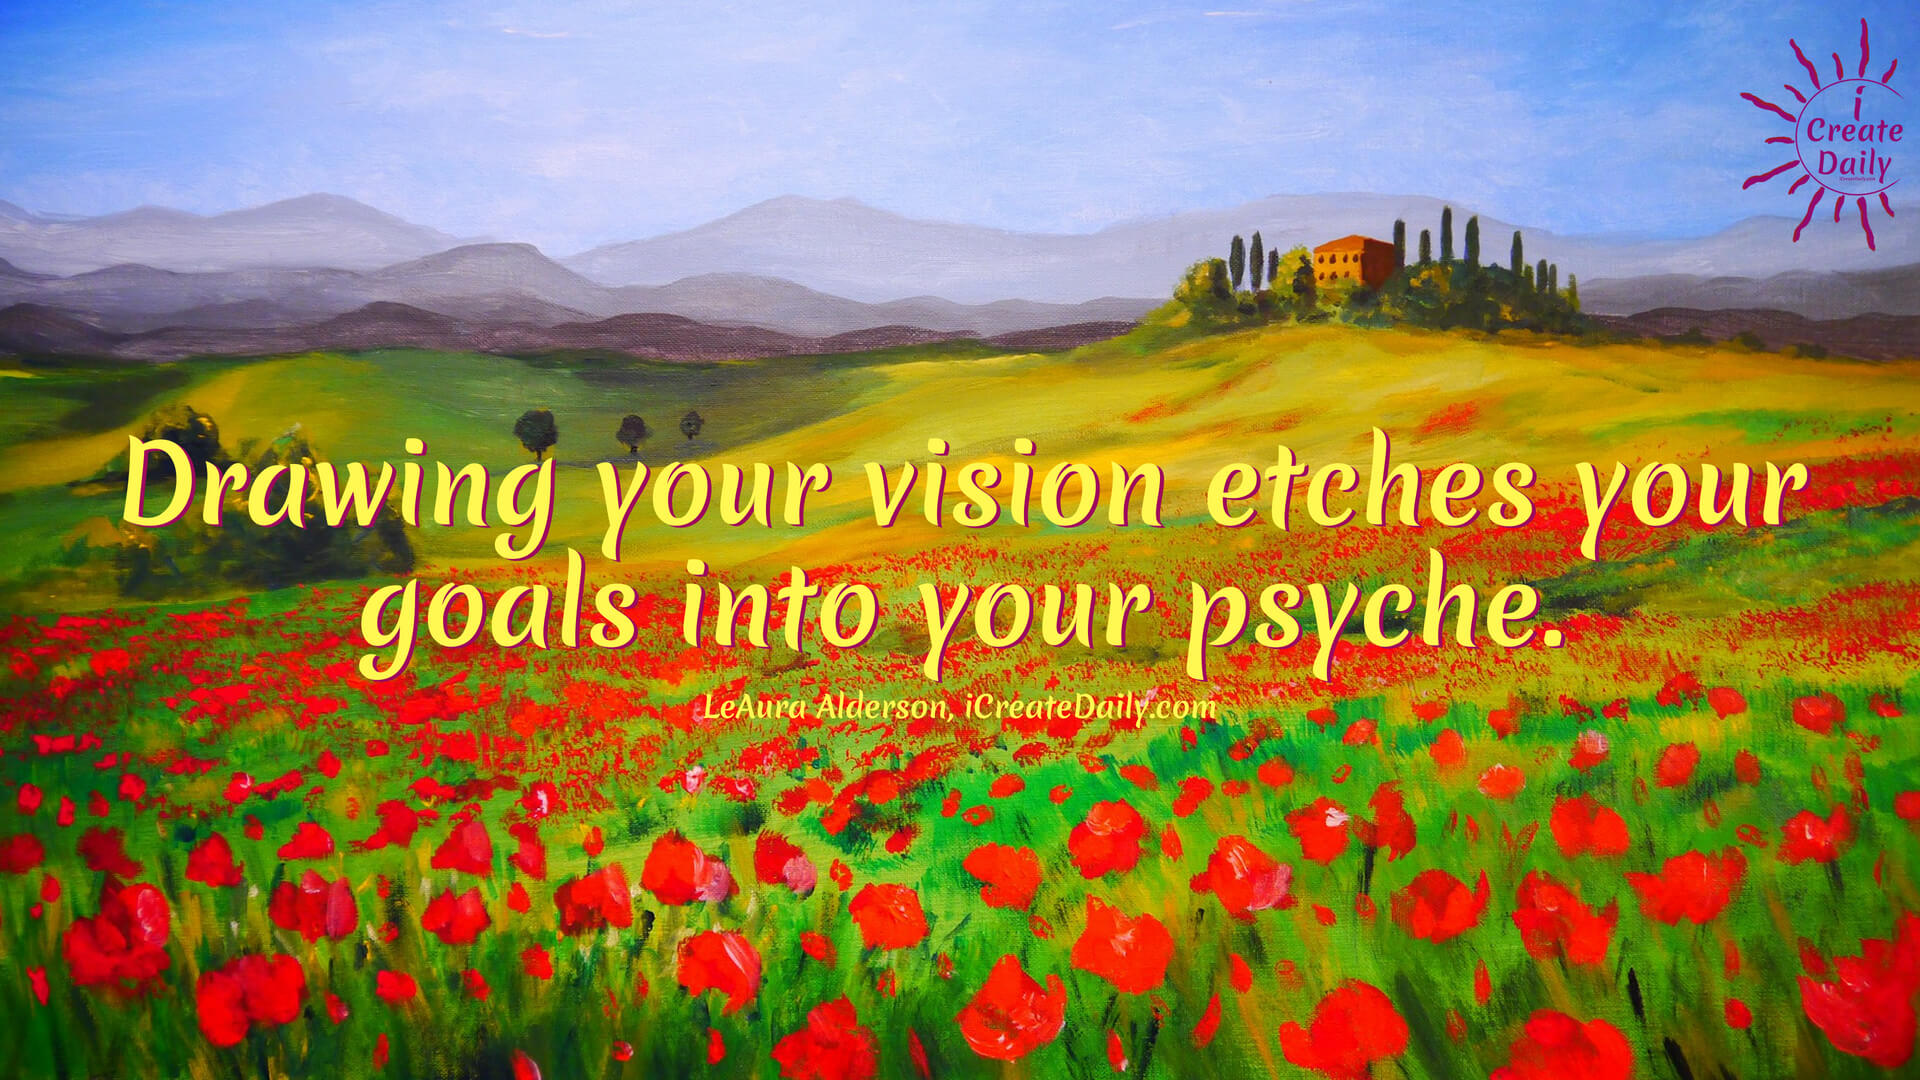 If you're a visual artist, you have the advantage of drawing or painting your vision board. This is a great way to help etch your goals into your psyche. #GoalsQuote #VisioningTools #VisioningQuotes #Visionboards